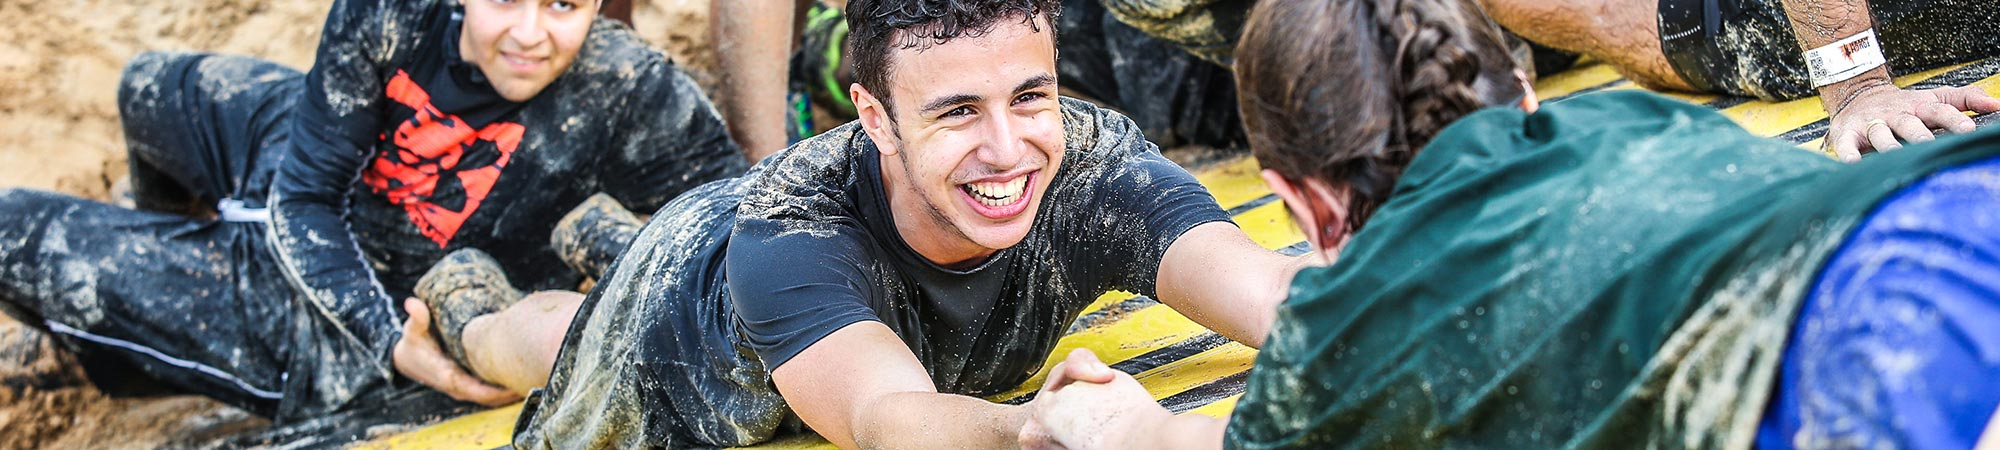 What is Tough Mudder